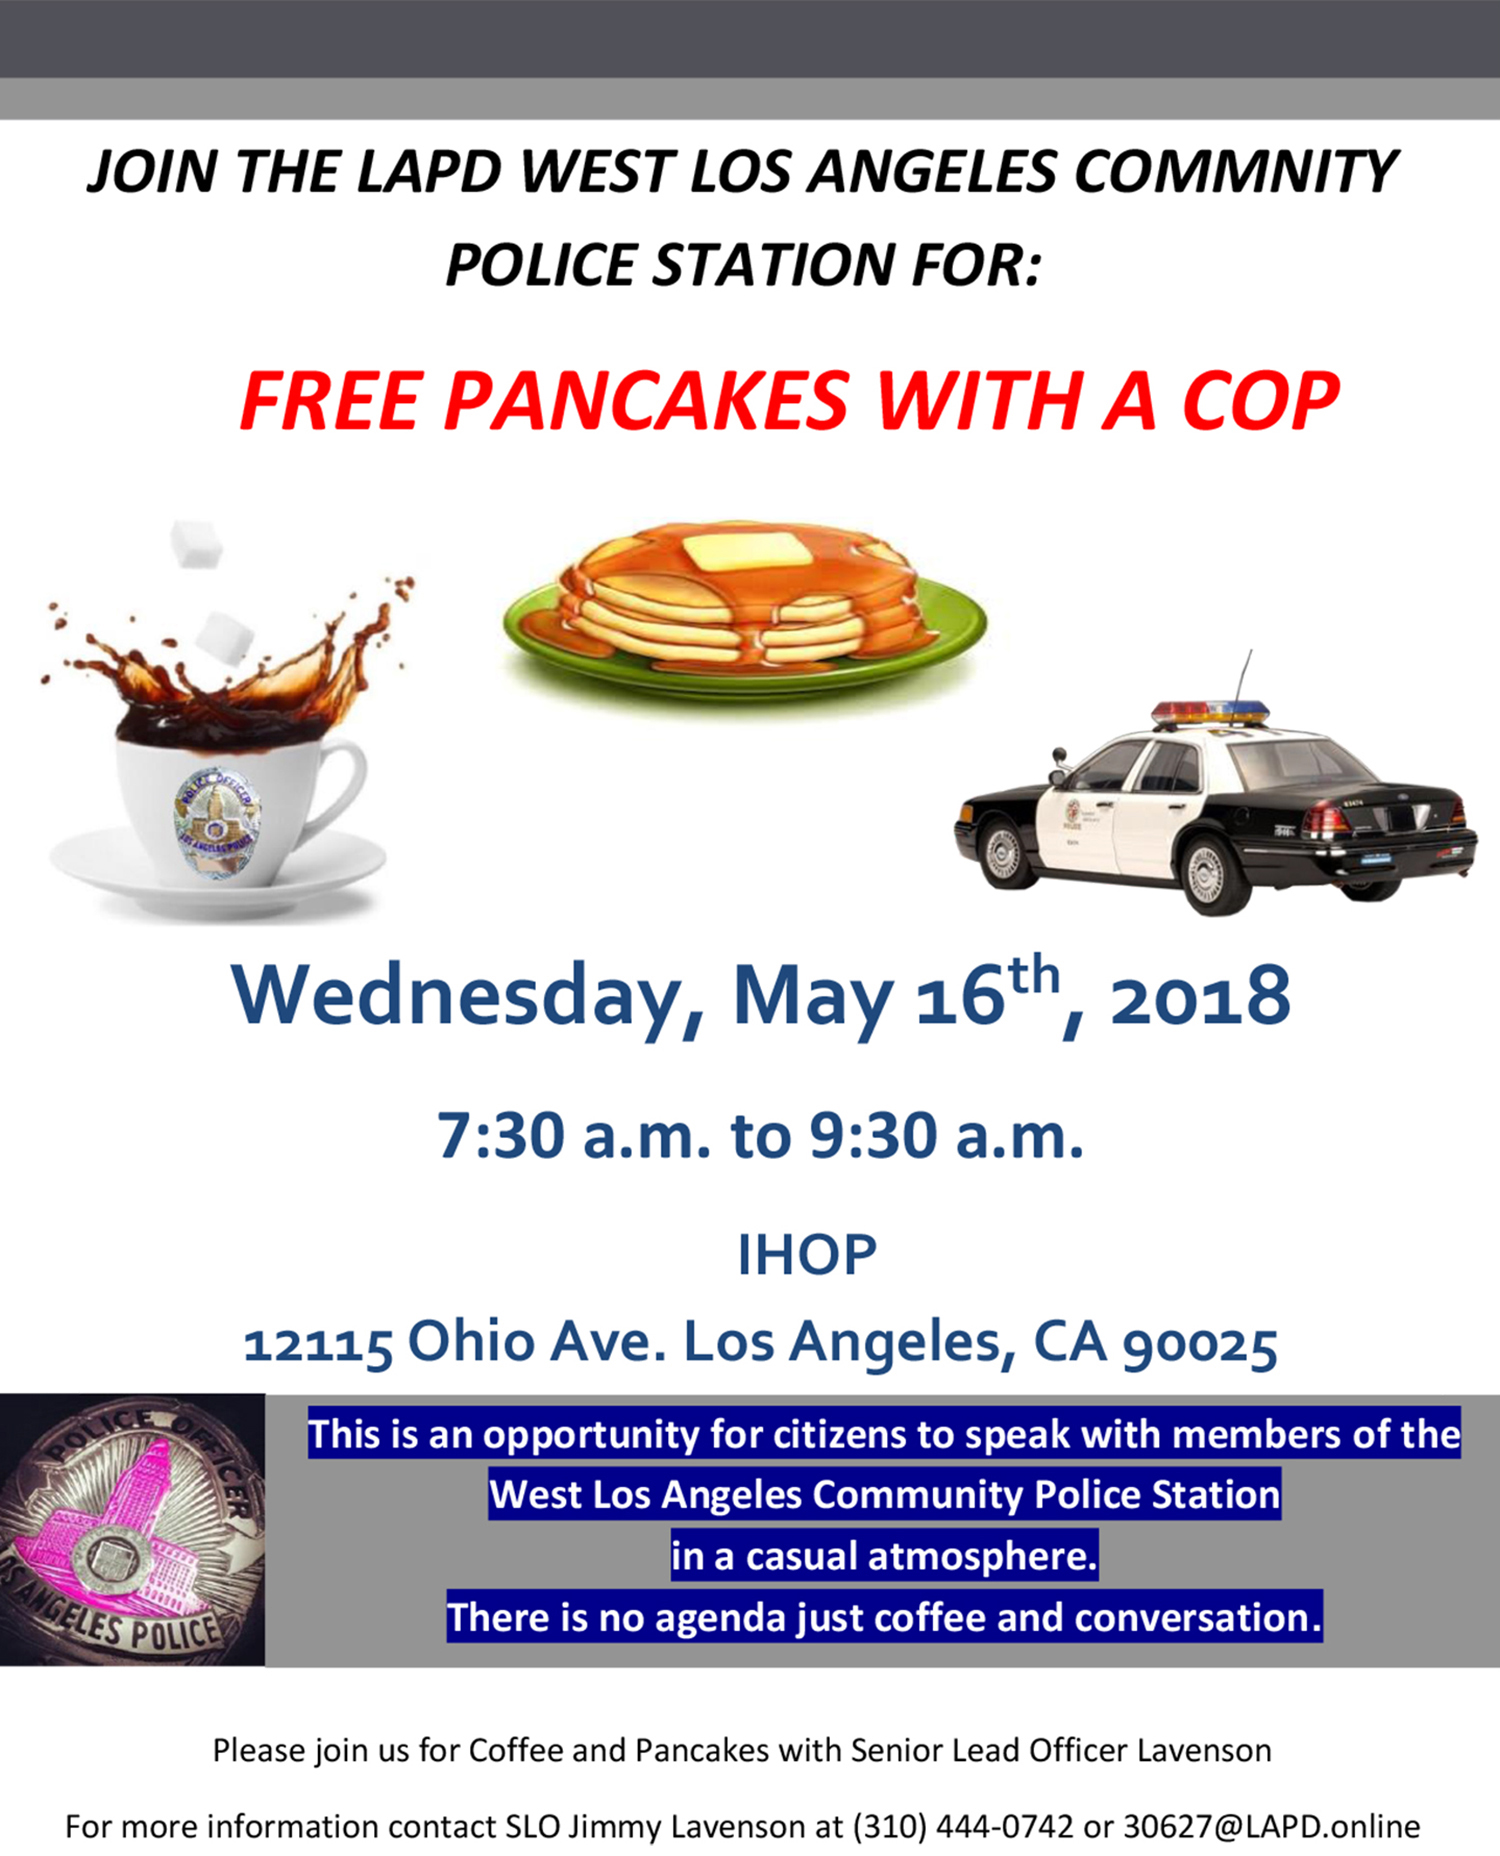 Pancakes With A COP.jpg